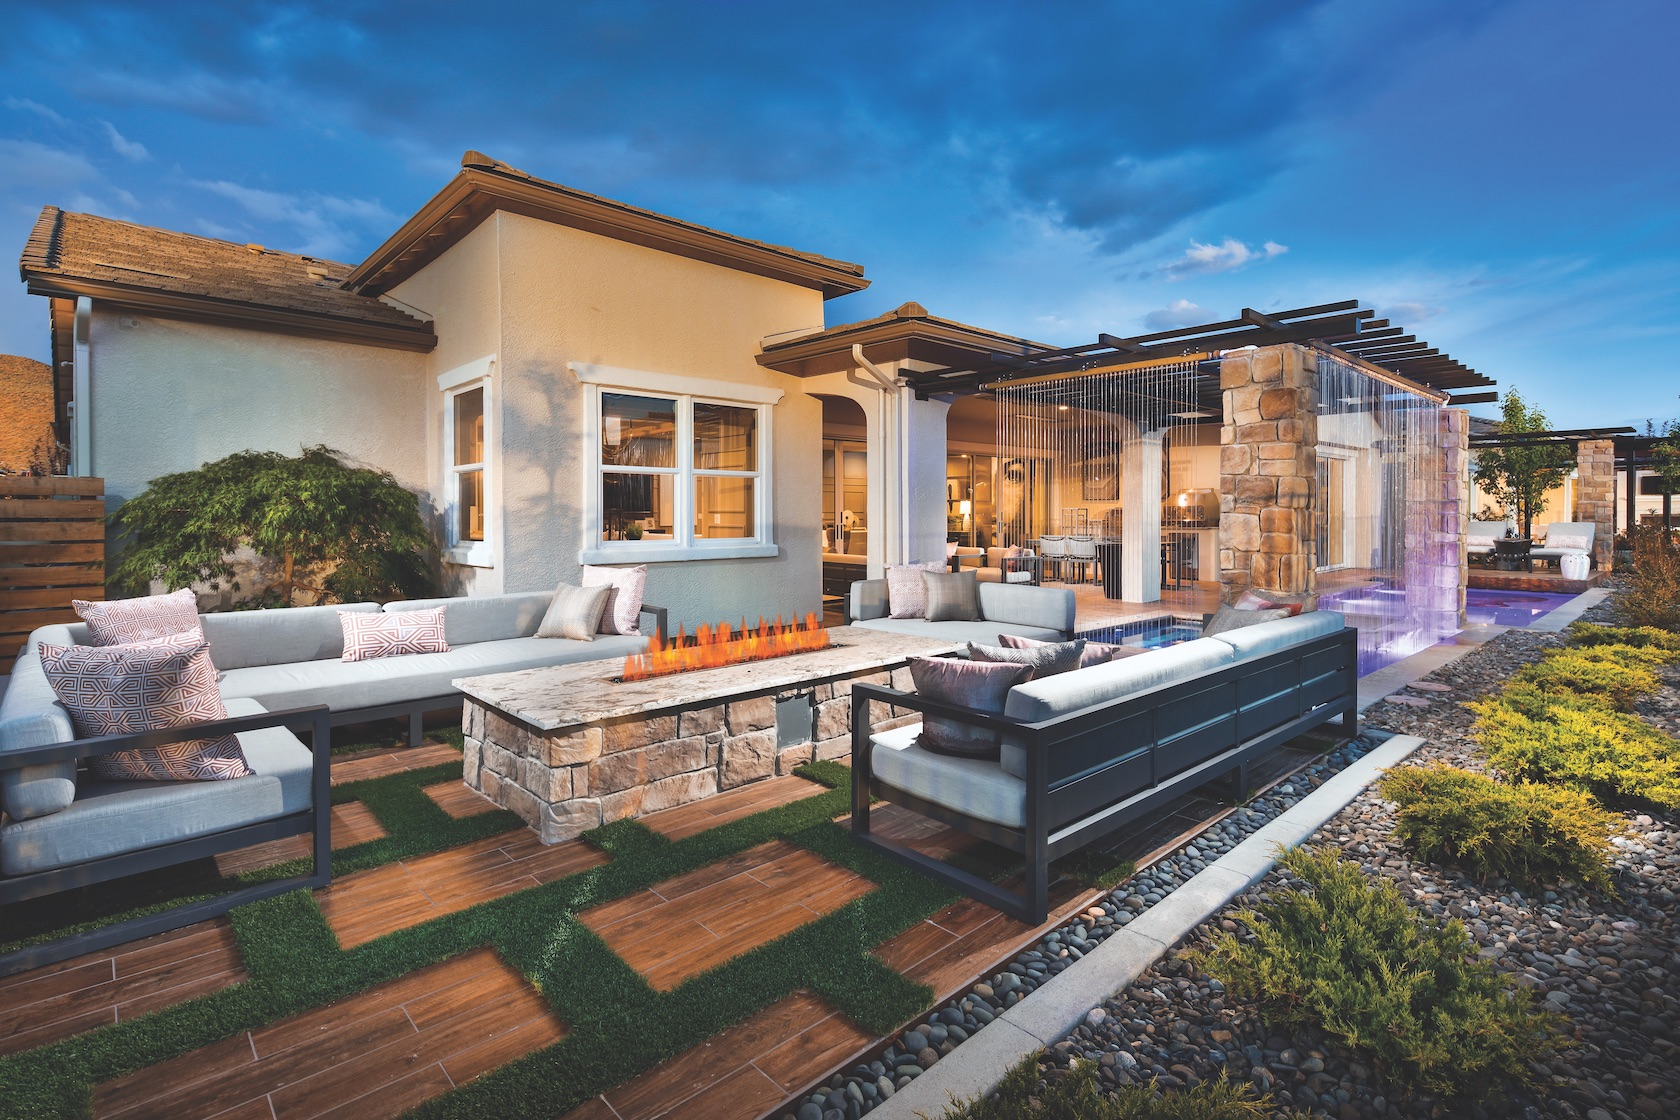 How to Arrange Patio Furniture for Outdoor Living | Build ... on Outdoor Living And Patio id=80286